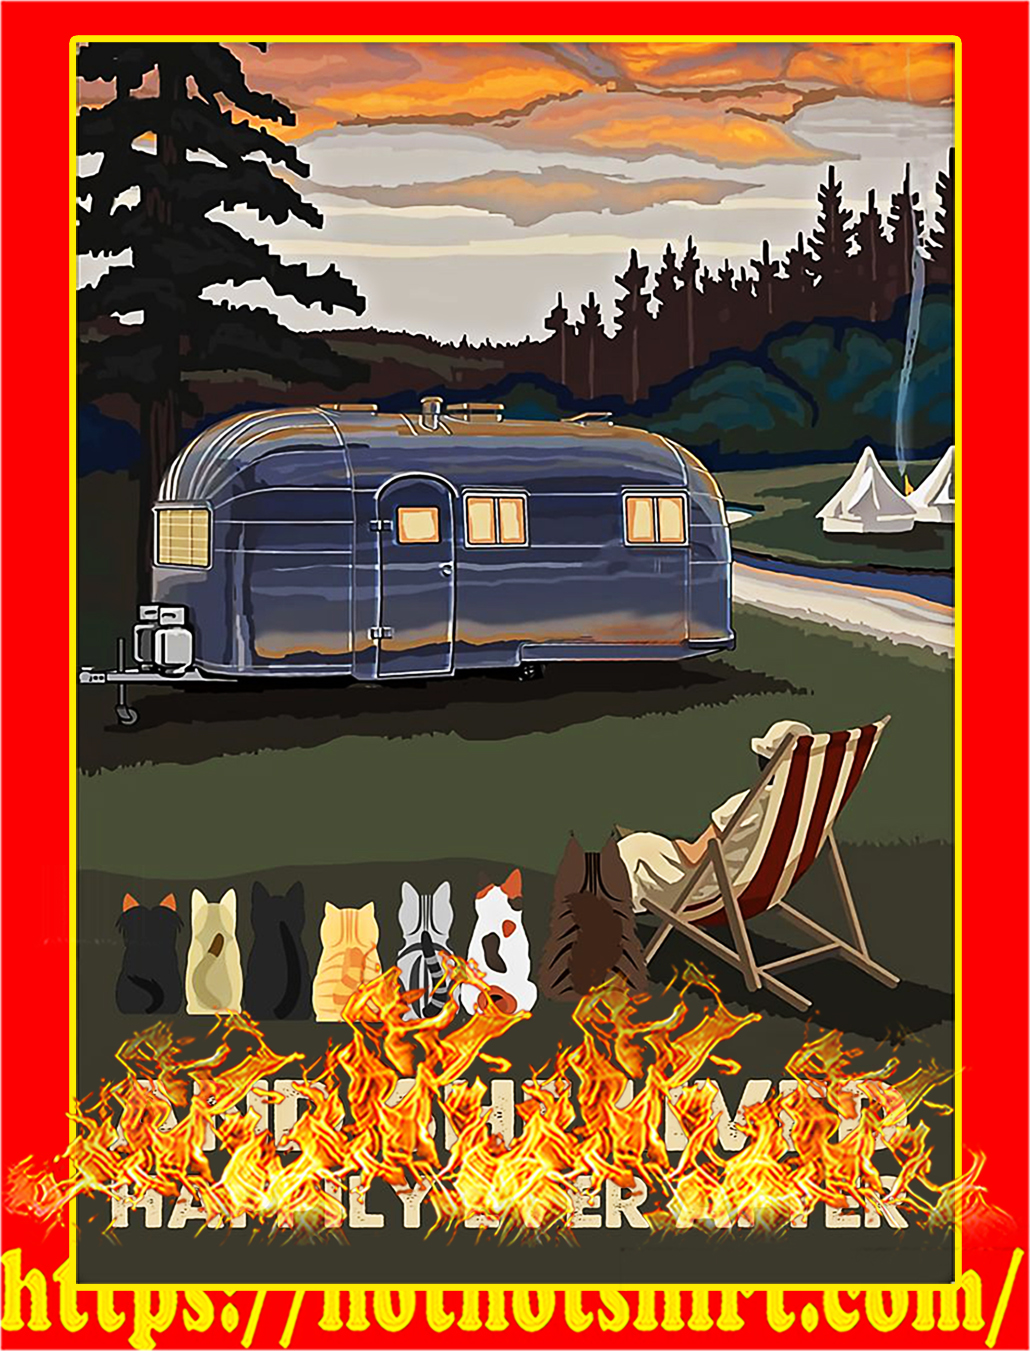 Camping and cats And she lived happily ever after poster - A3